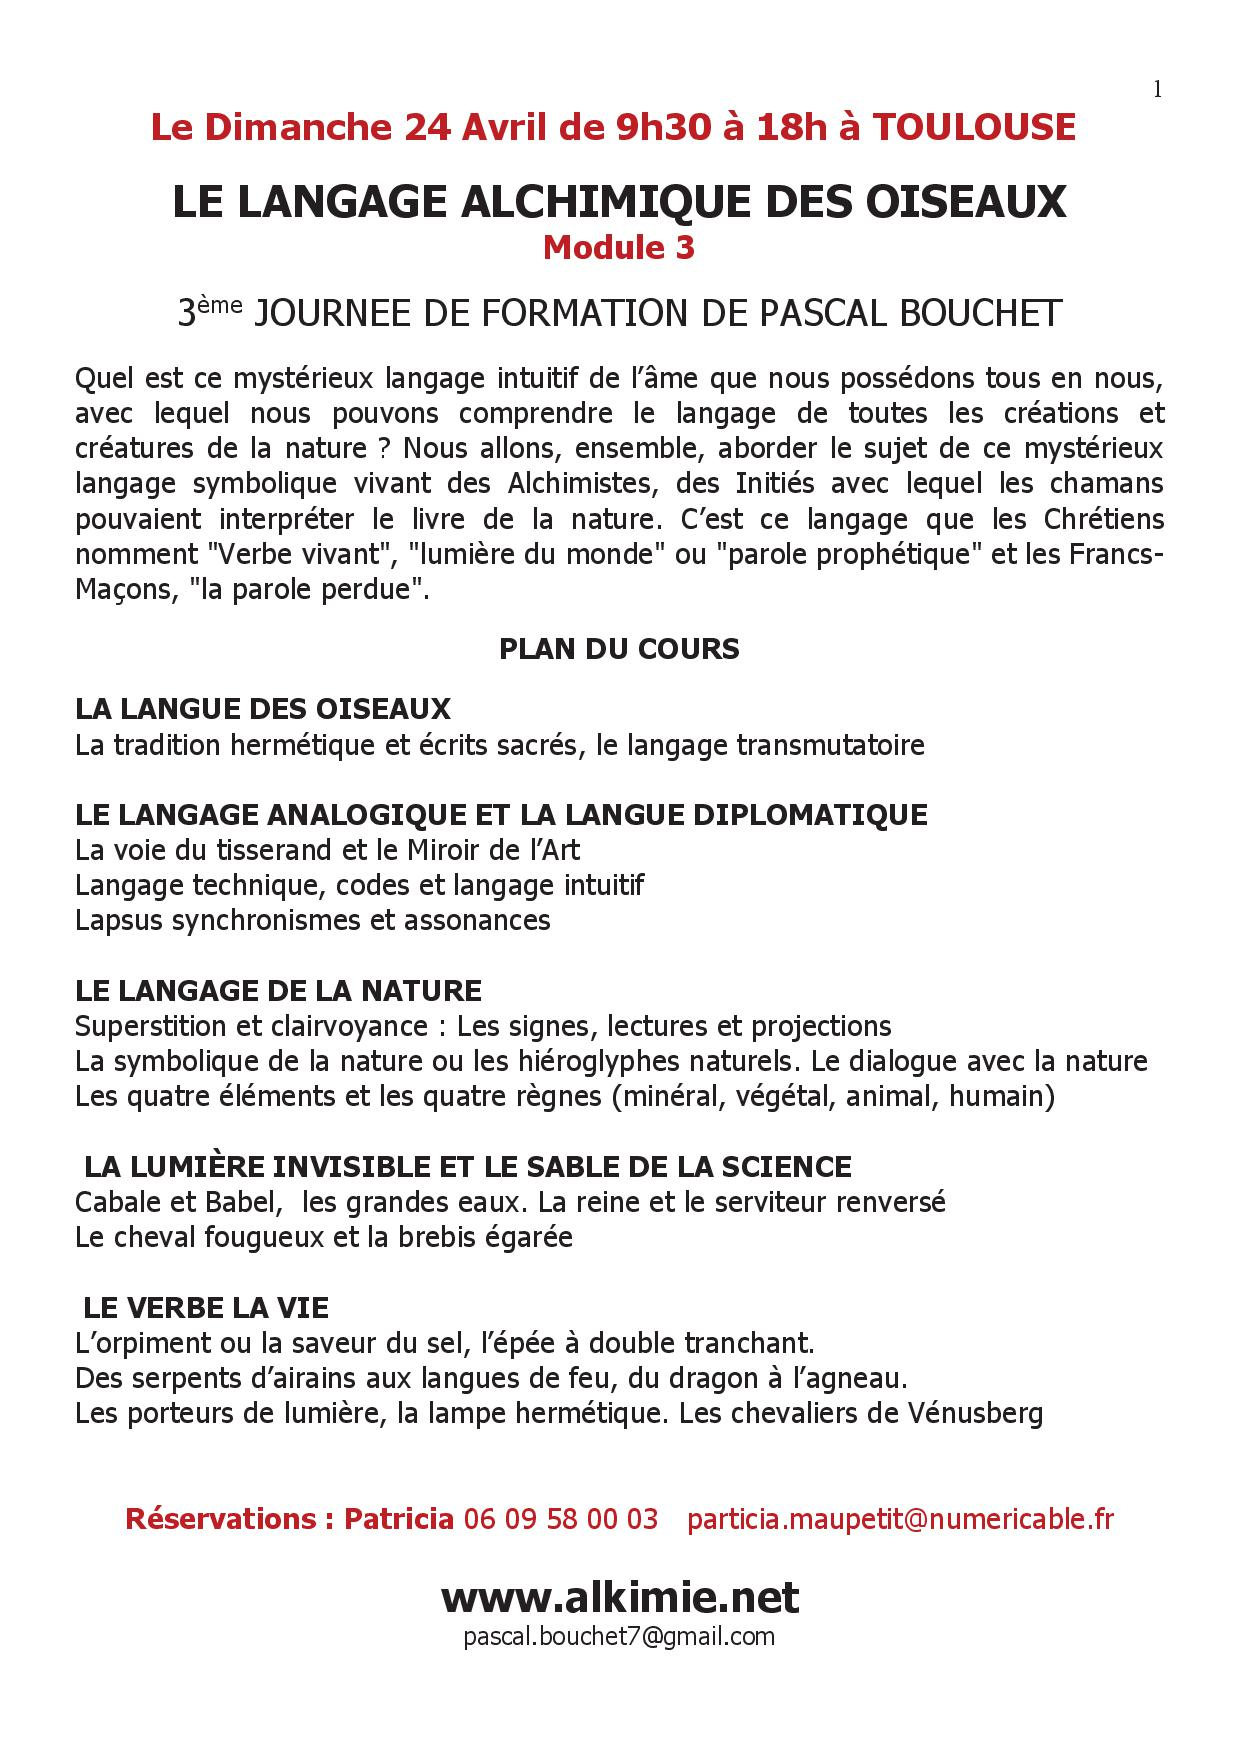 Plan cours avi 3 toulouse avril 2017